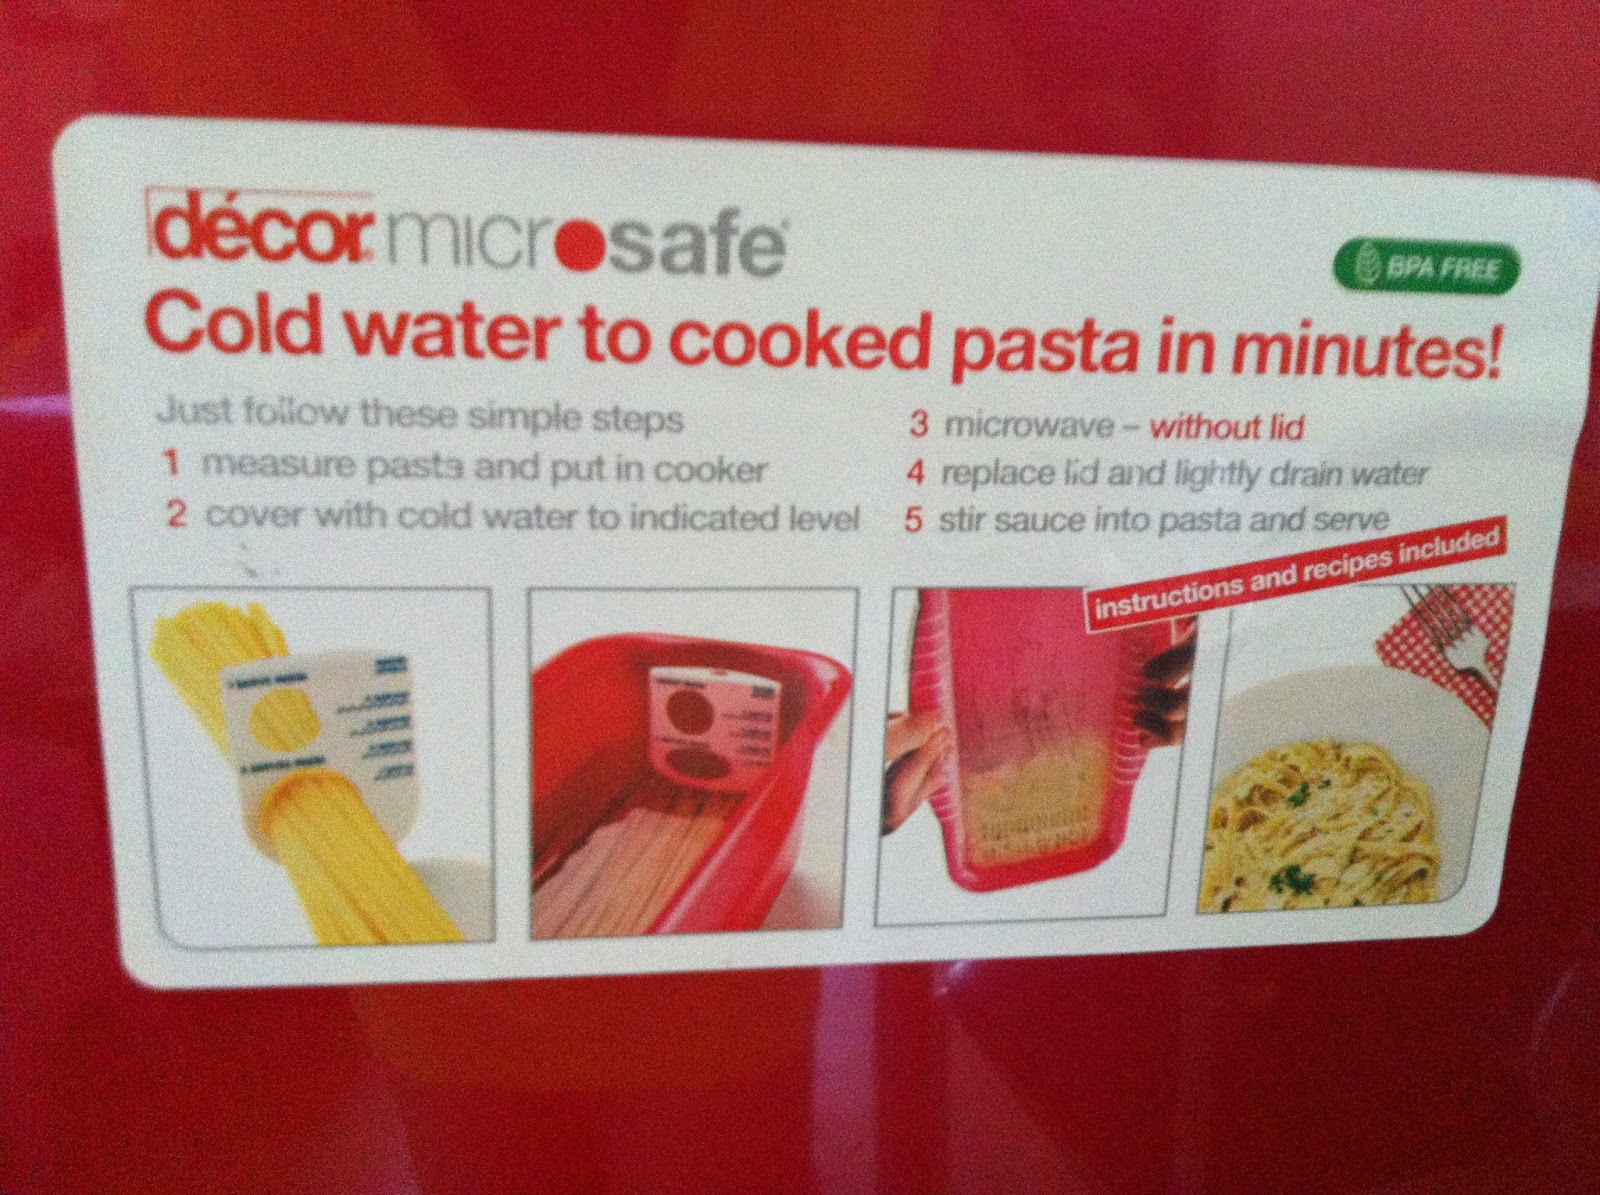 I First Measure The Pasta